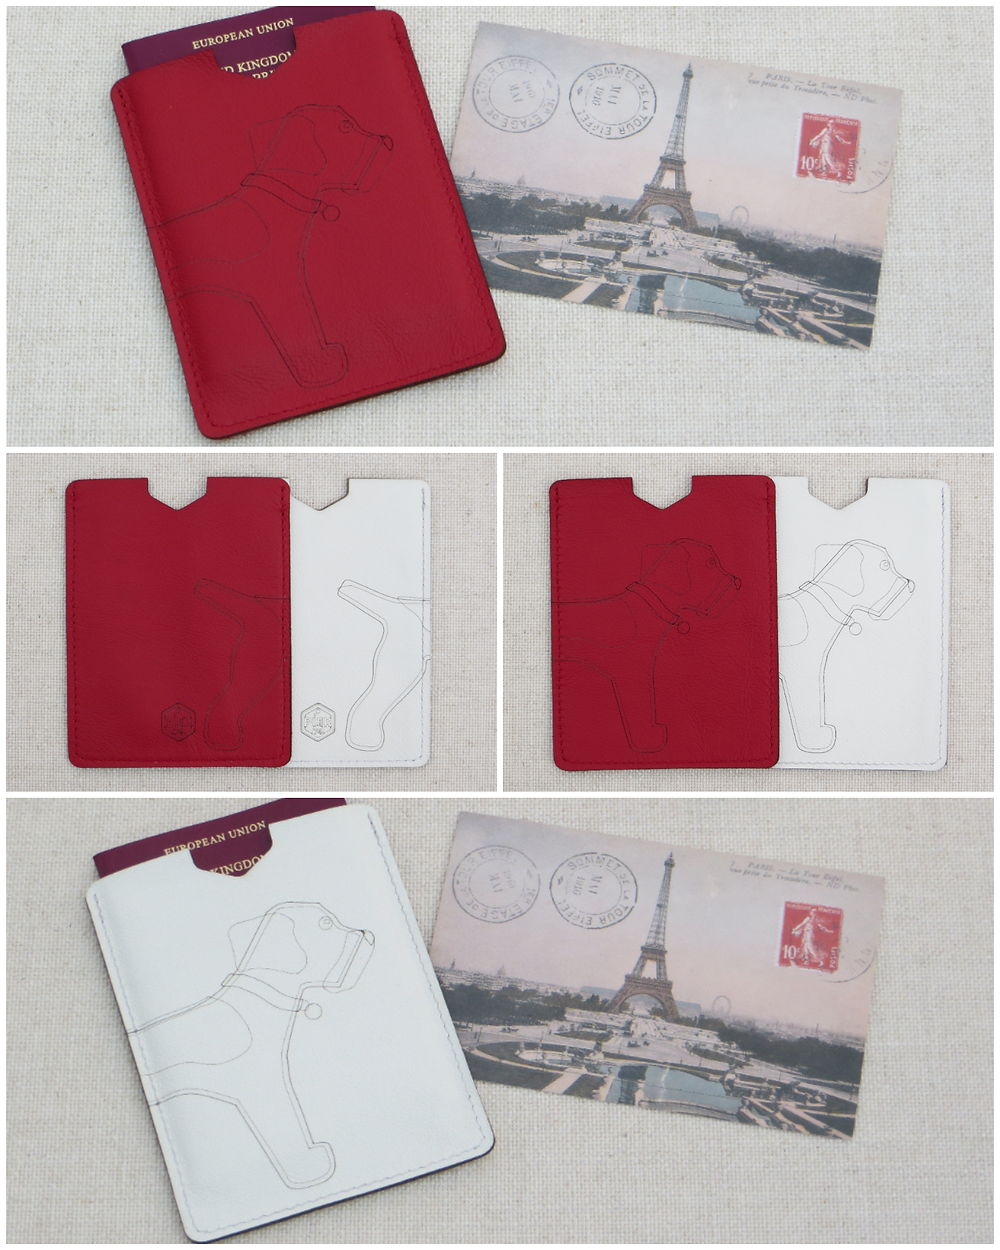 a collage of red and white passport sleeves featuring a wrap around border terrier motif to the front and reverse side